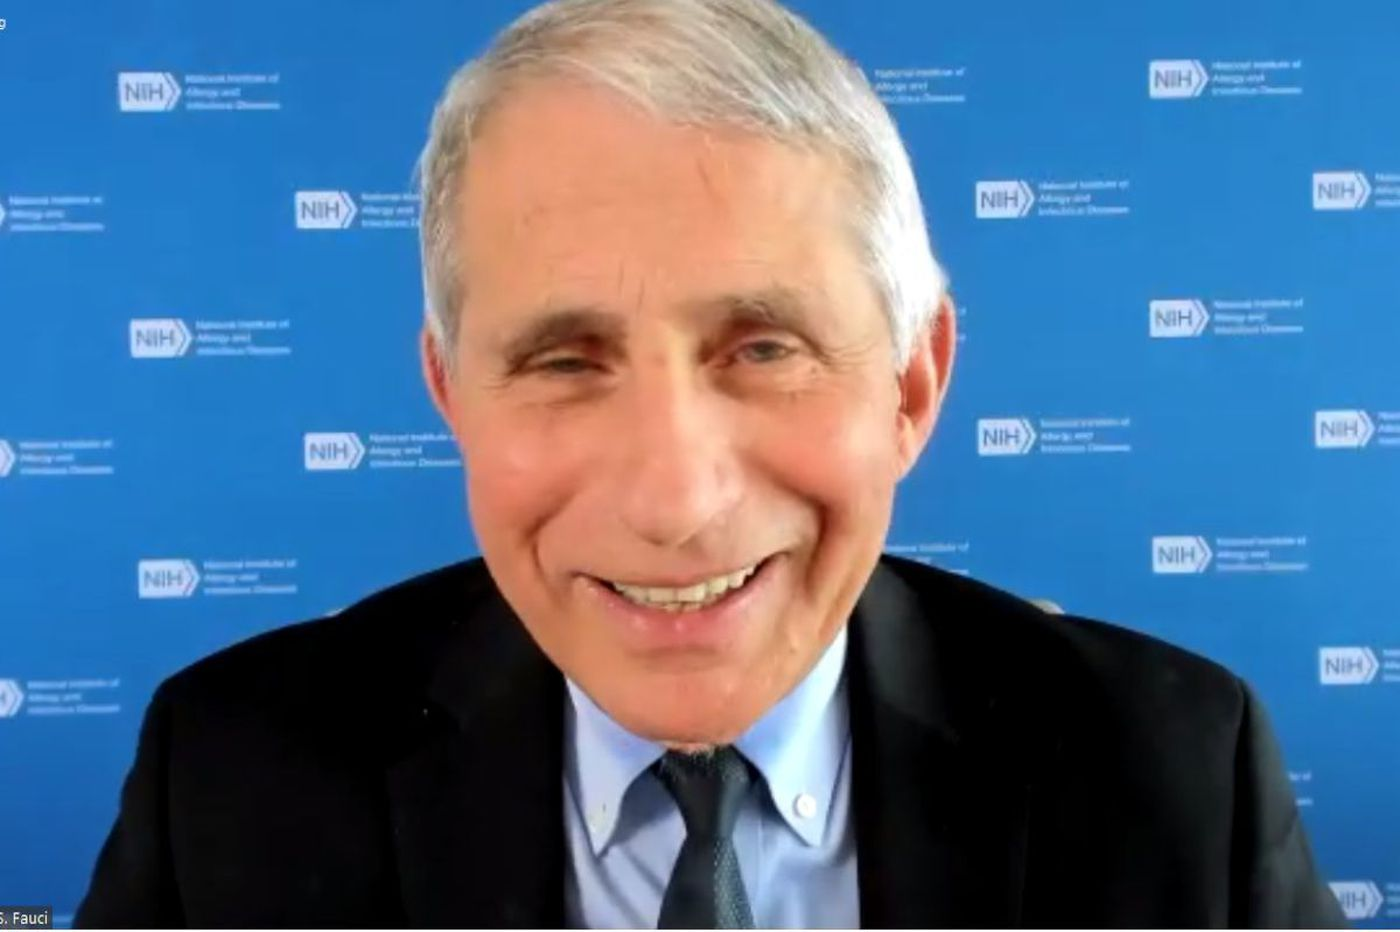 Anthony Fauci talks with Jefferson doctors about coronavirus vaccines, herd immunity, and how long we'll need masks